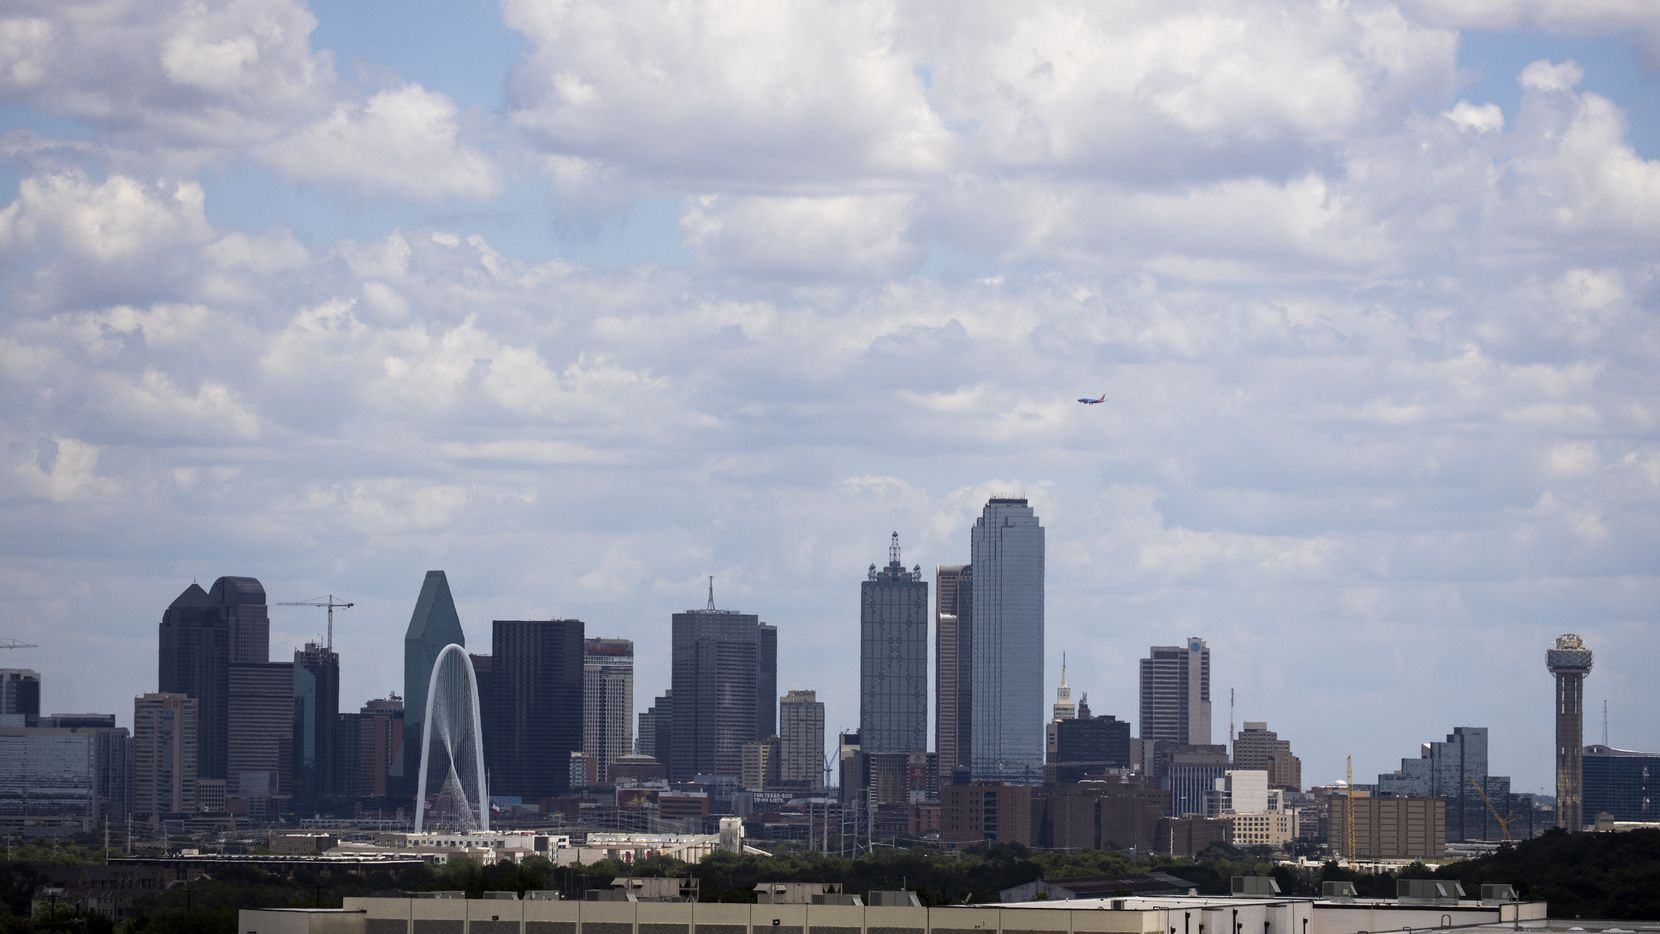 The Dallas Skyline as seen form  the Henry Wade Juvenile Center in Dallas.